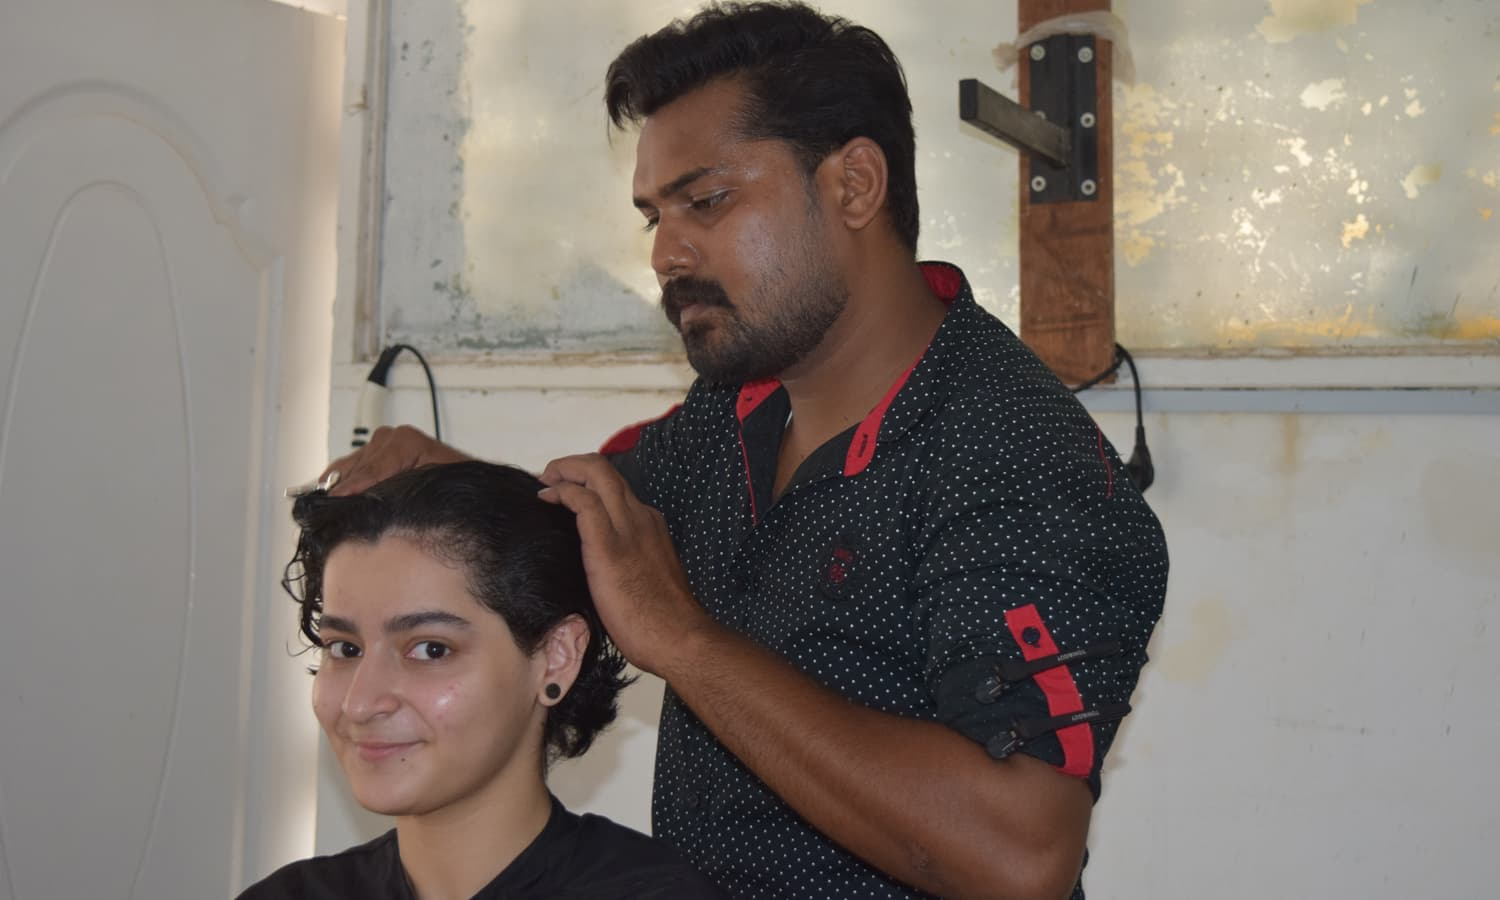 Maria smiles as Inder, the stylist gets done with the haircut. — Photo by Yumna Rafi